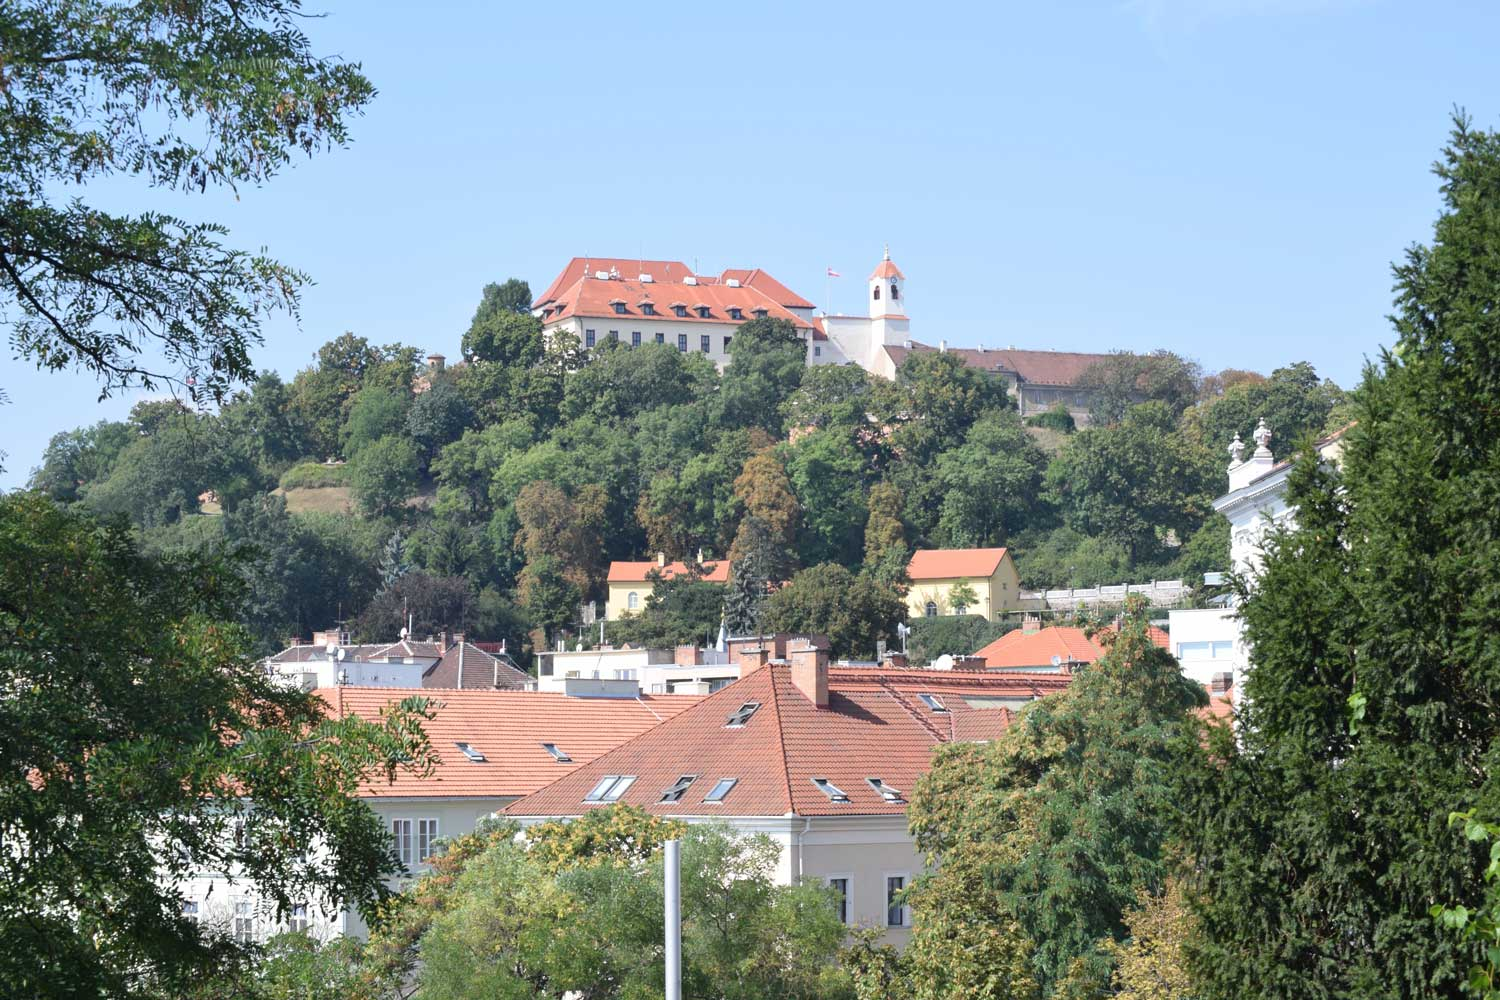 That castle up on the hill was a key piece of Brno's defenses. They are very proud of the fact that they withstood a 4-month siege by the Swedes in 1645, toward the end of the 30 Years' War.